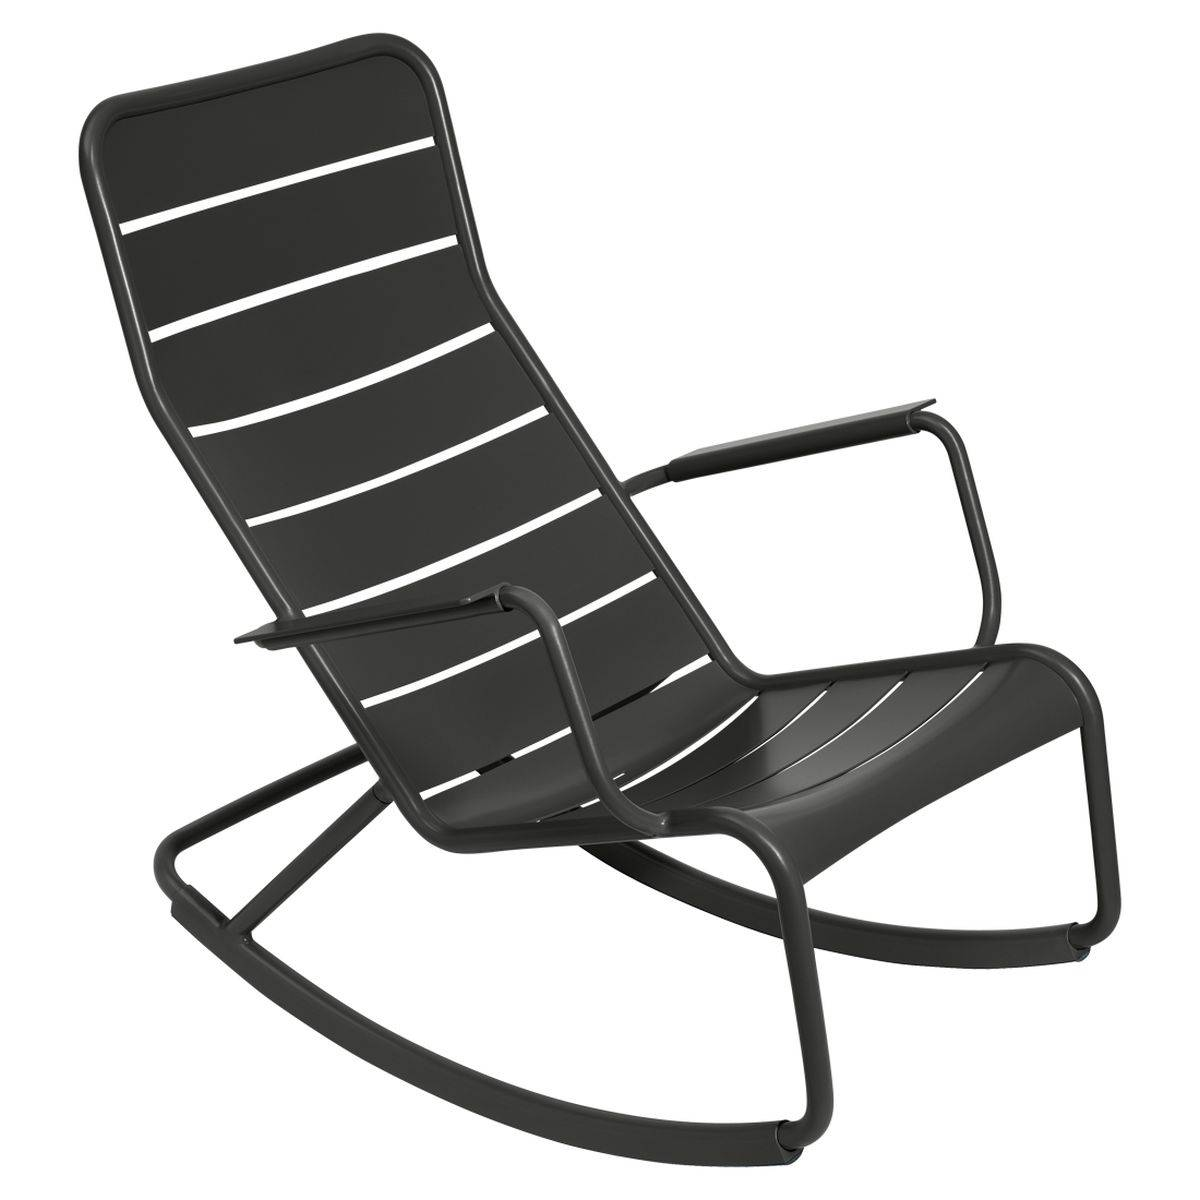 Wonderful image of luxembourg rocking chair this is the first rocking chair in the  with #666666 color and 1200x1200 pixels